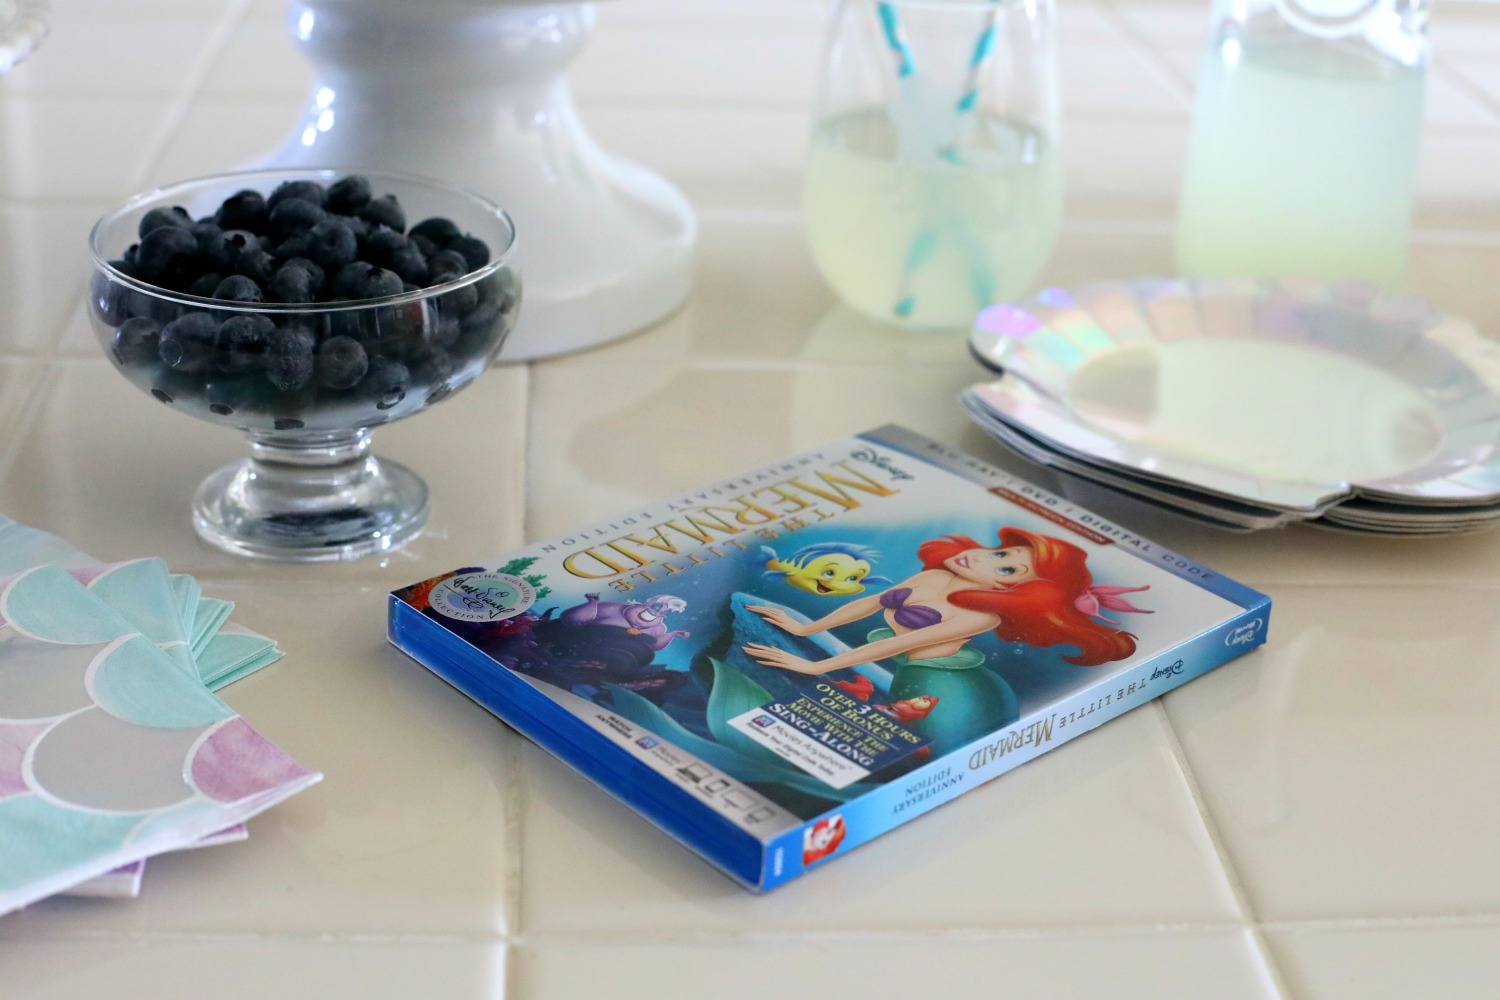 The-Little-Mermaid-Walt-Disney-Signature-Collection-movie-night